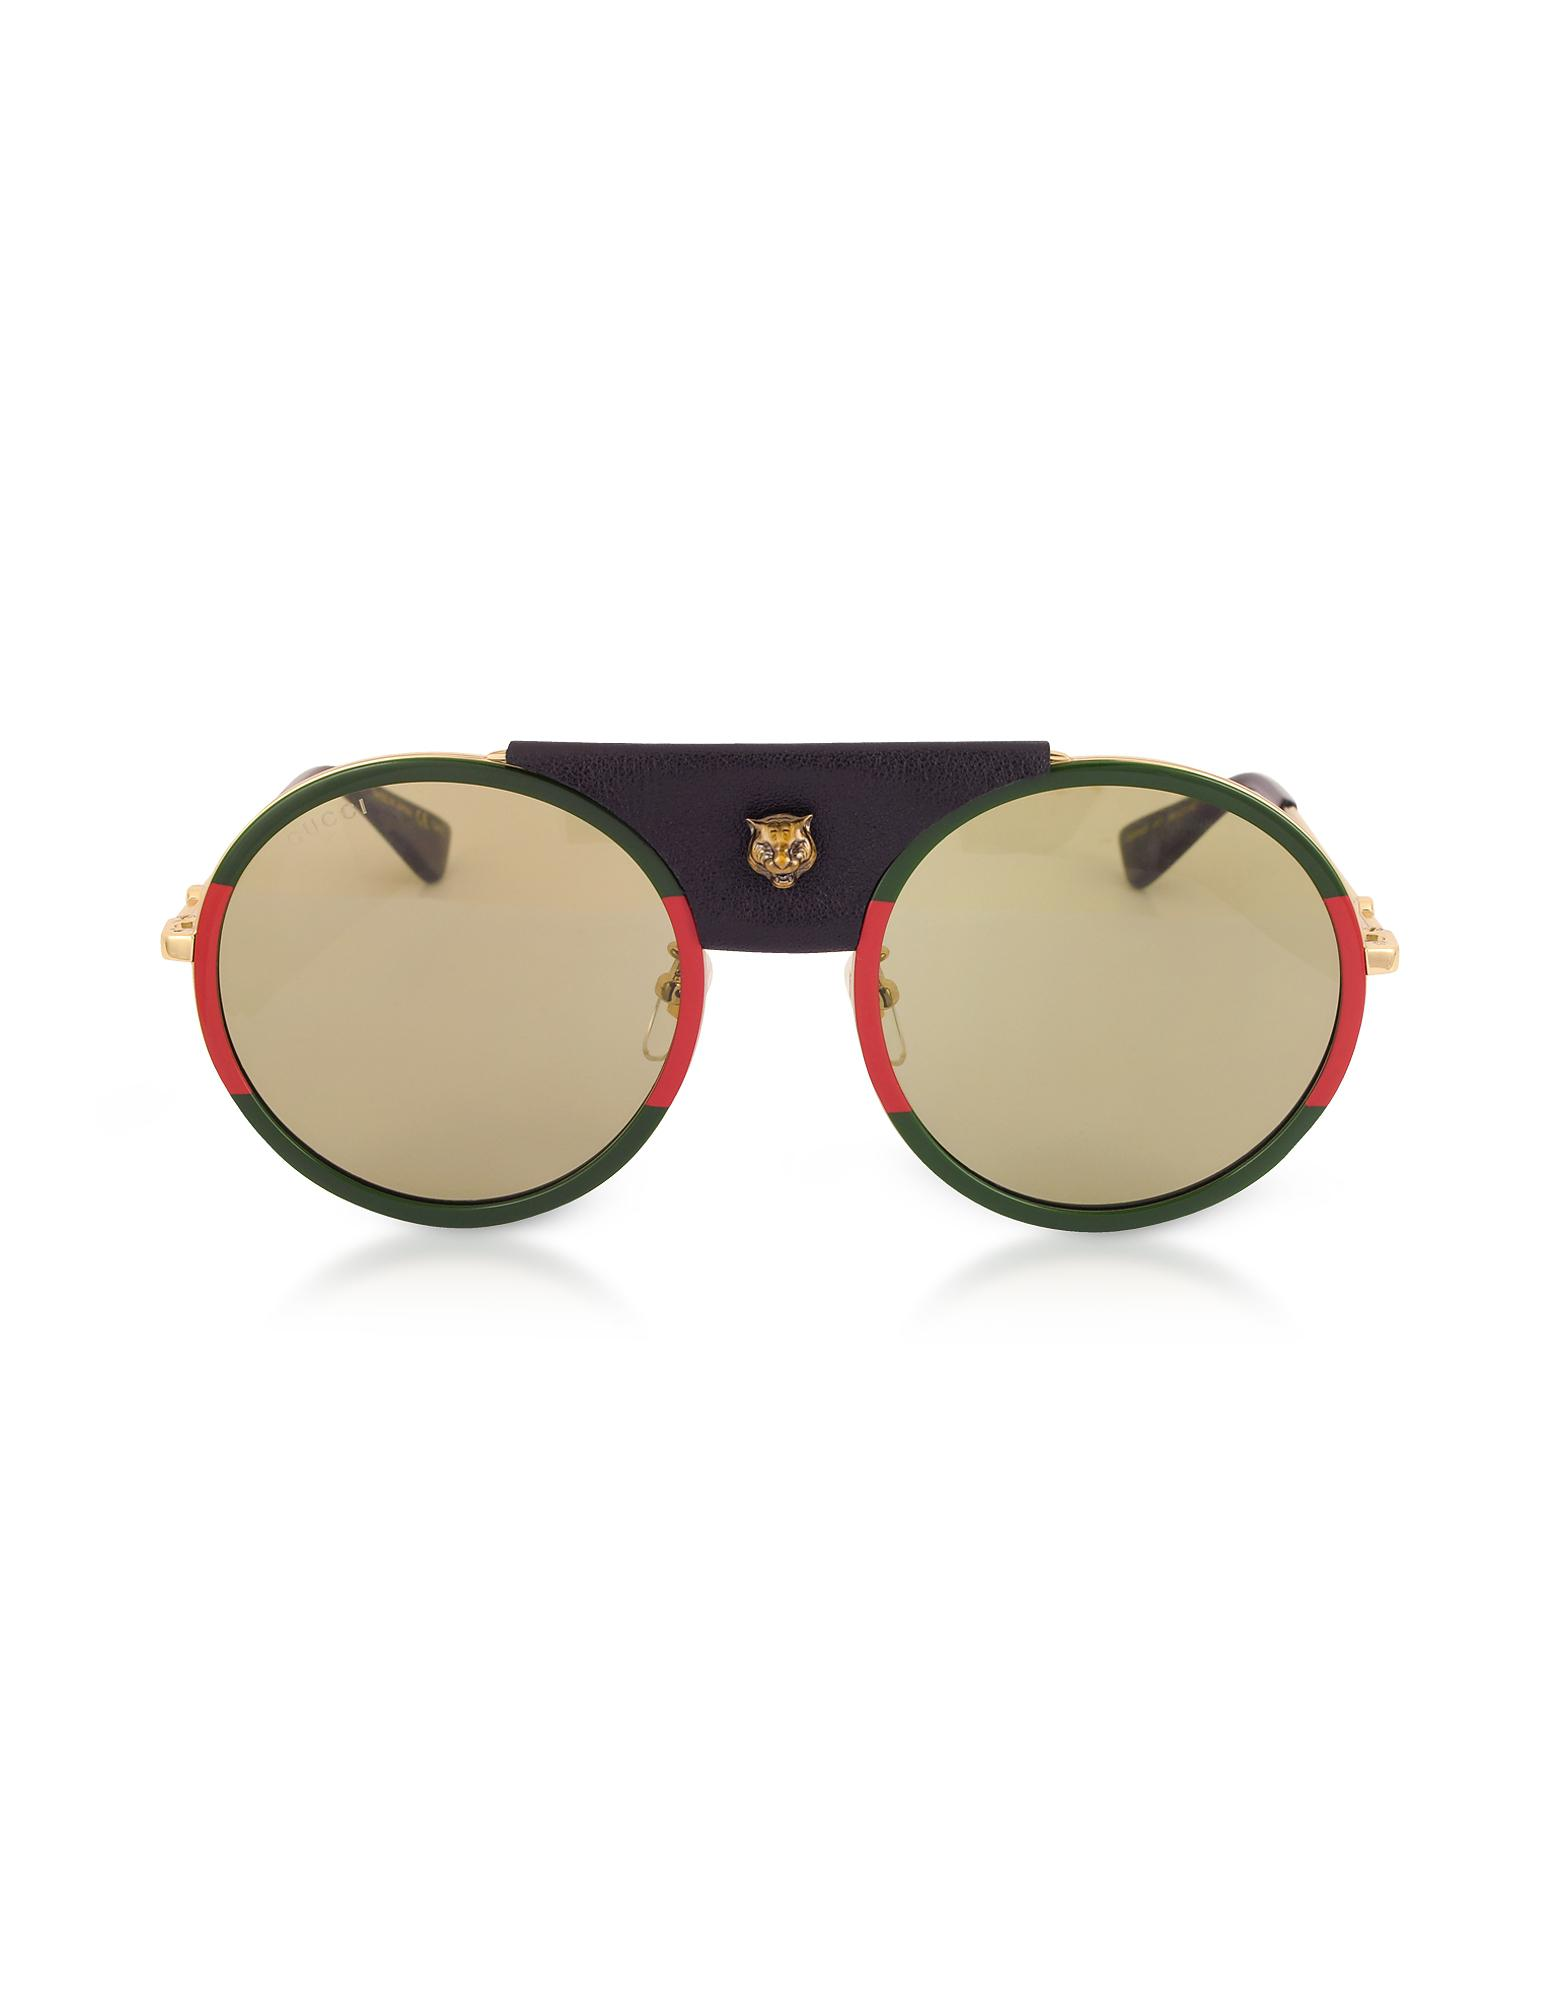 41ed7f36b1 Gucci Gg0061s Round-frame Gold Metal And Black Leather Sunglasses W ...